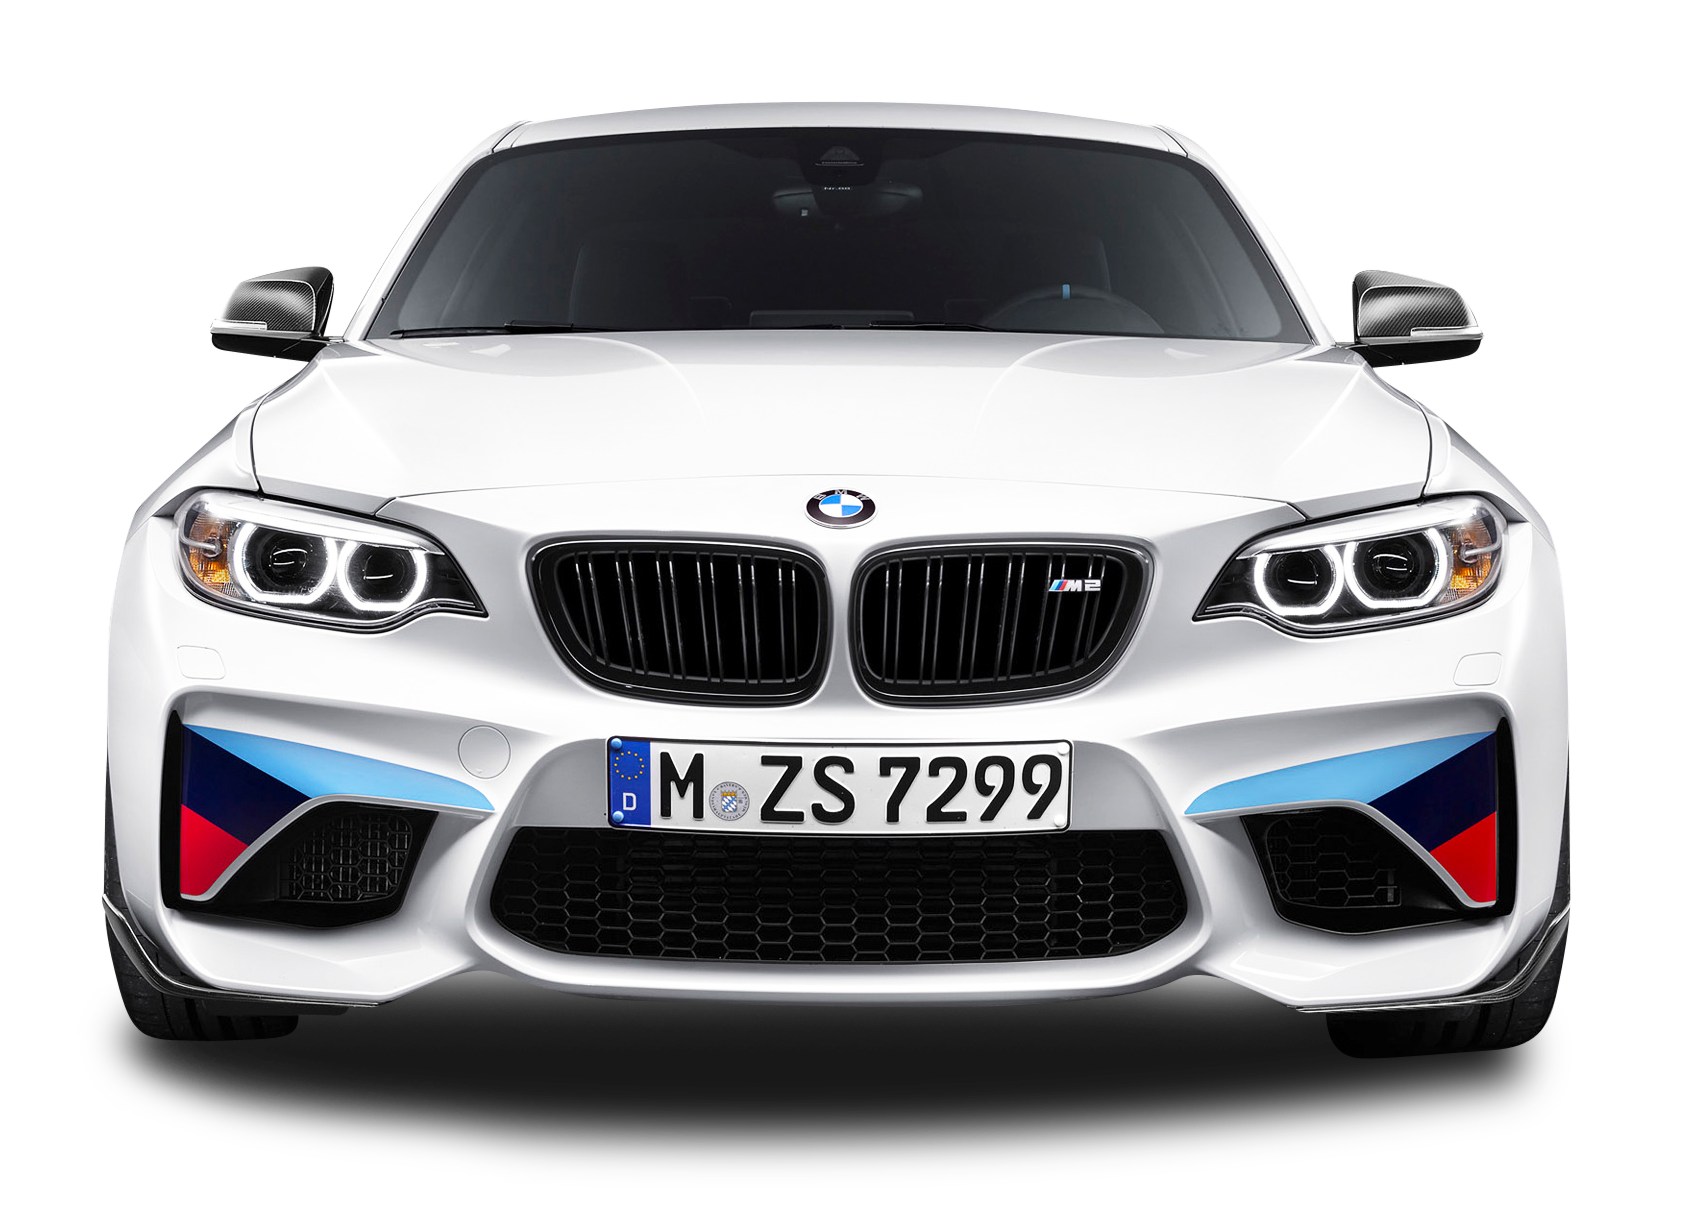 White BMW M2 Coupe Front View Car PNG Image.